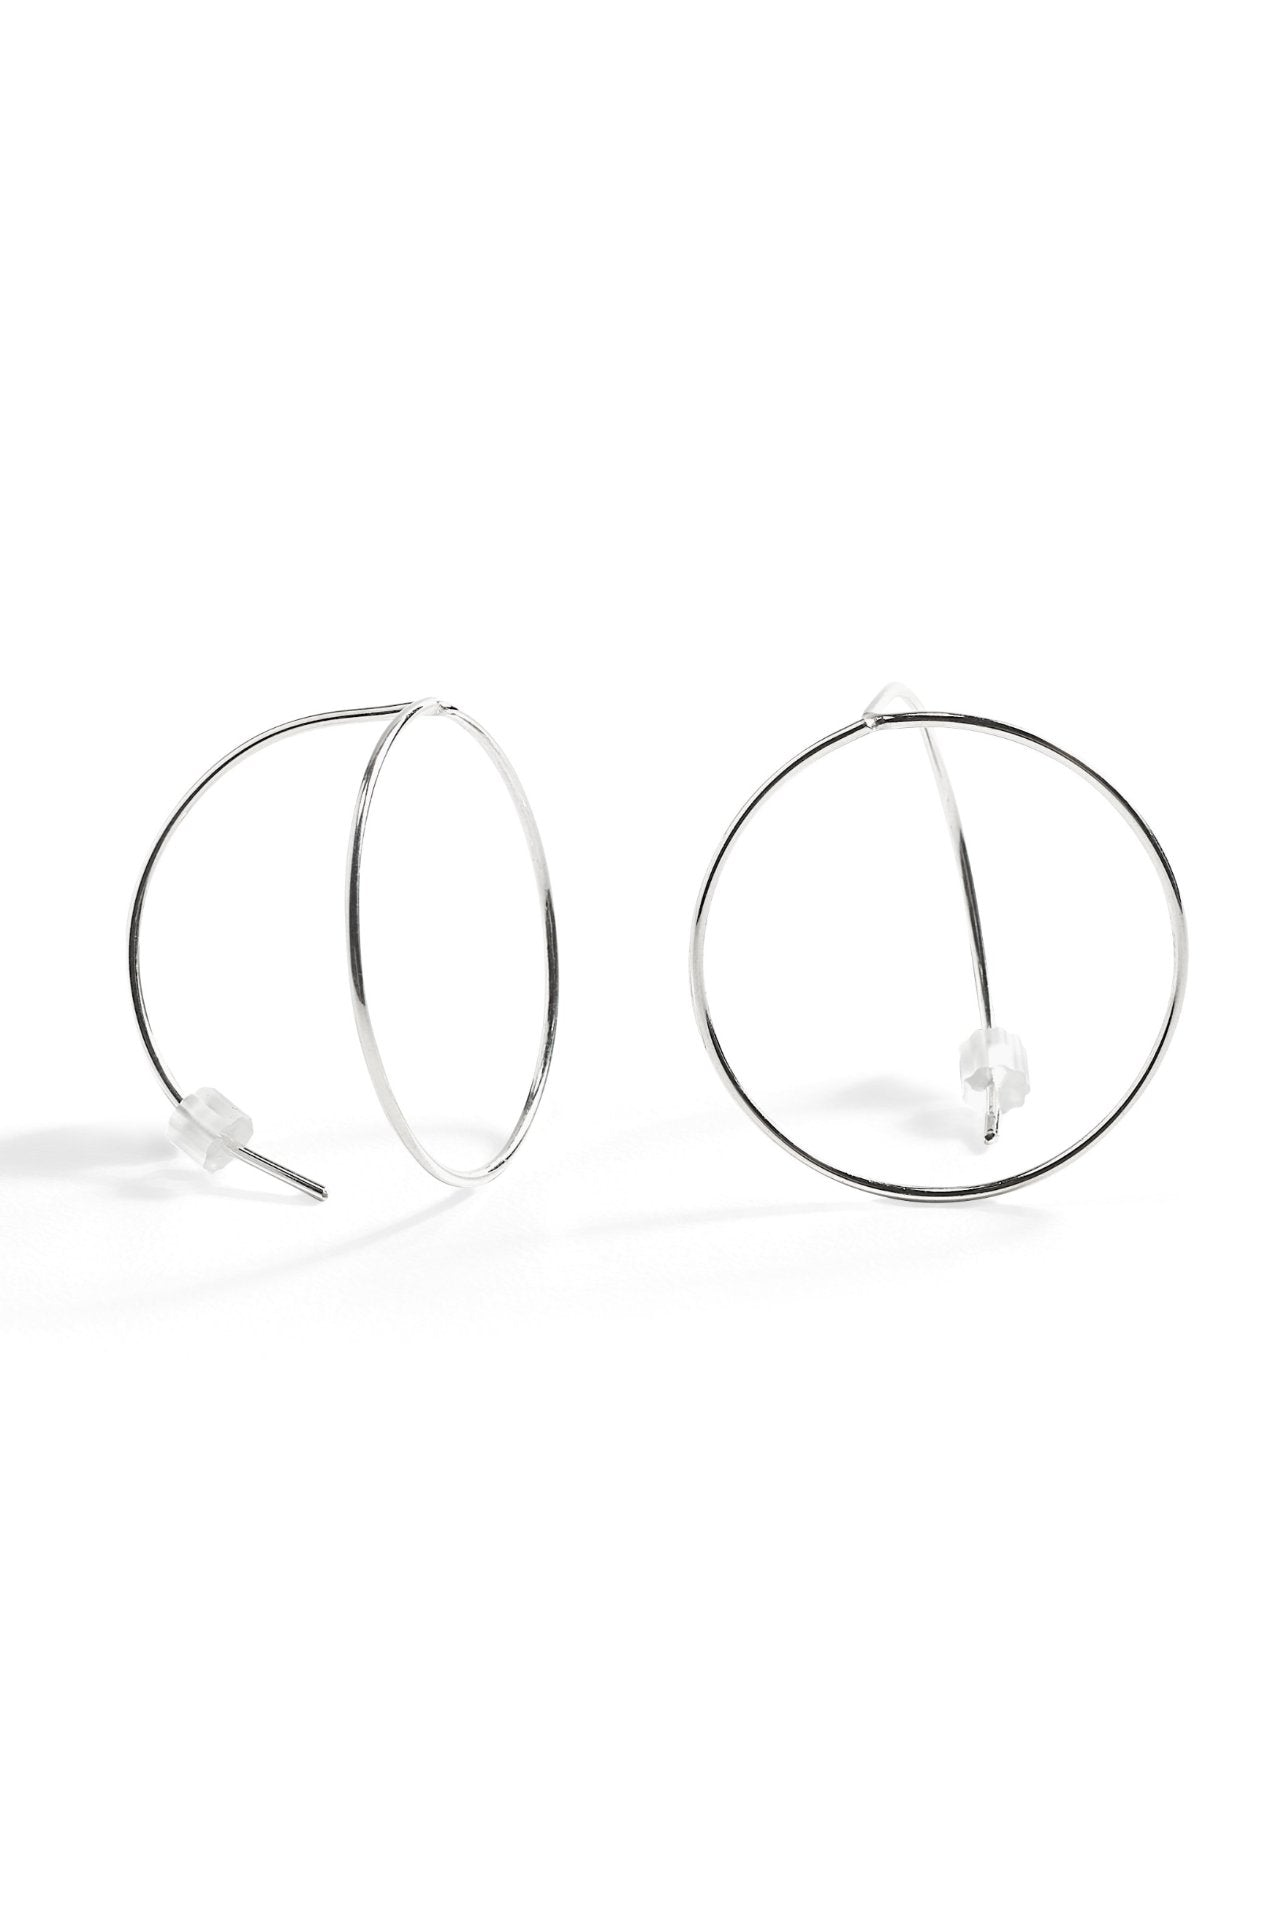 Lineage Round Earring- Silver